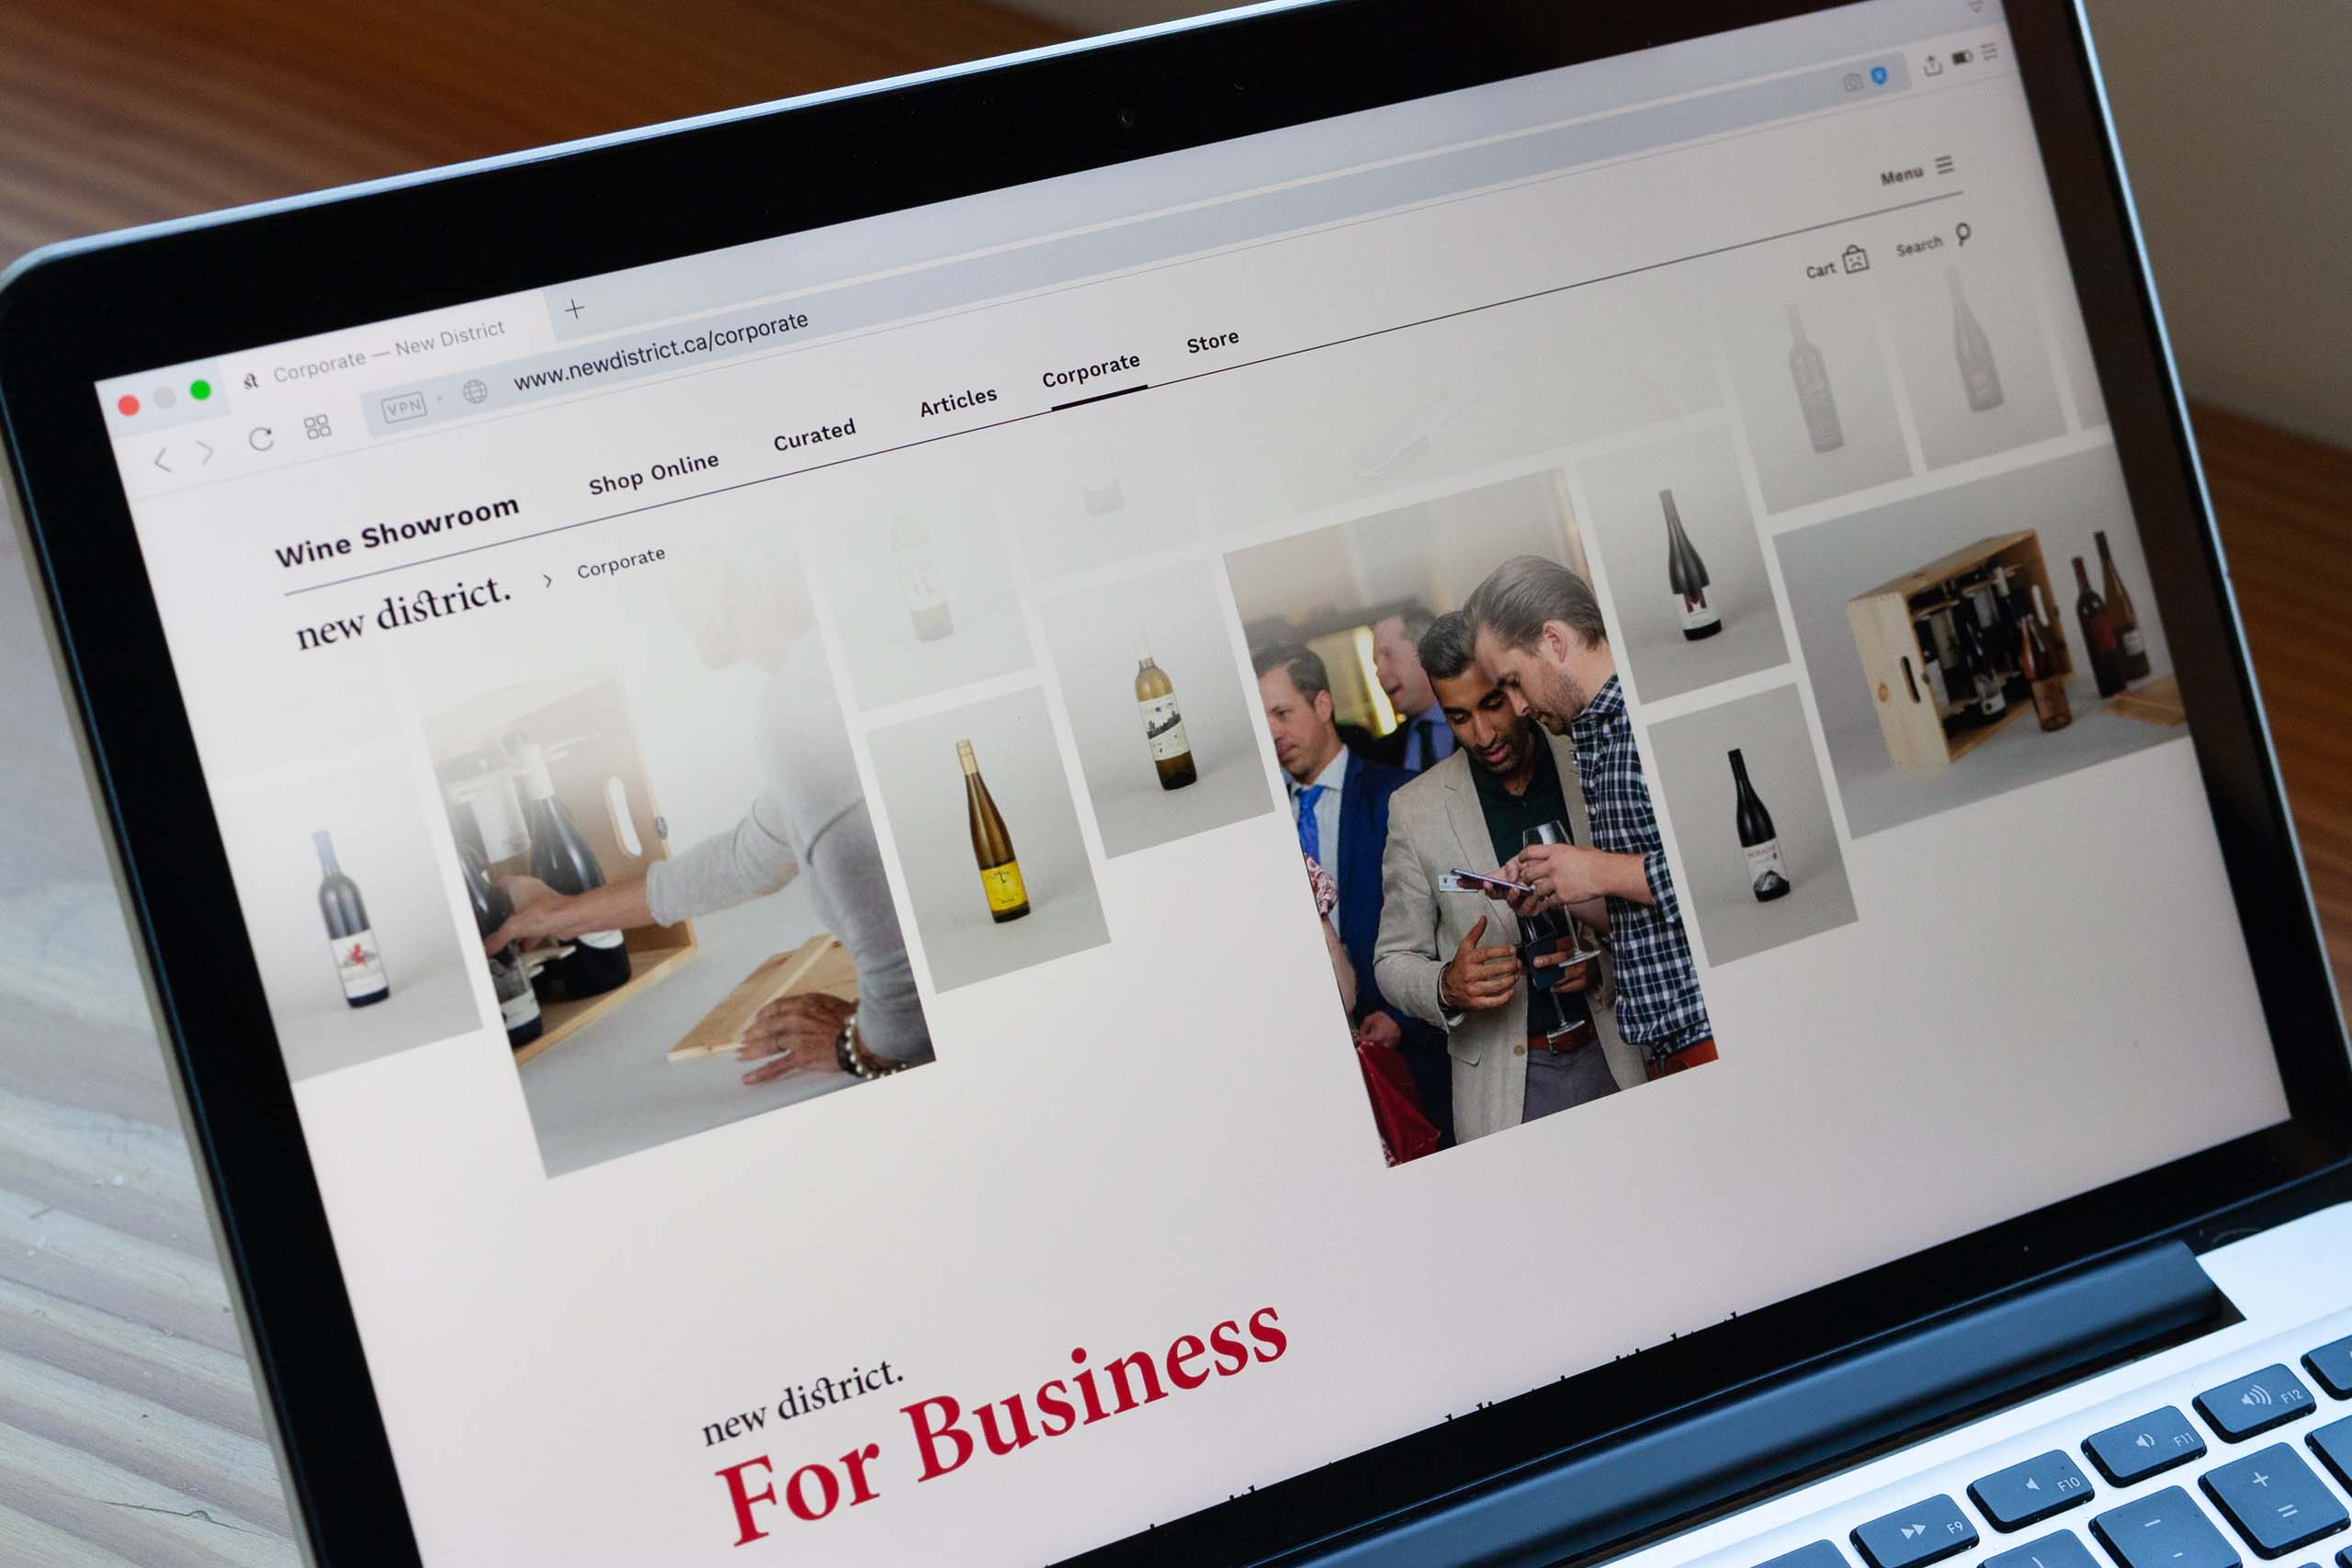 New District for Business page Header a grid of promotional images — by Yagnyuk.